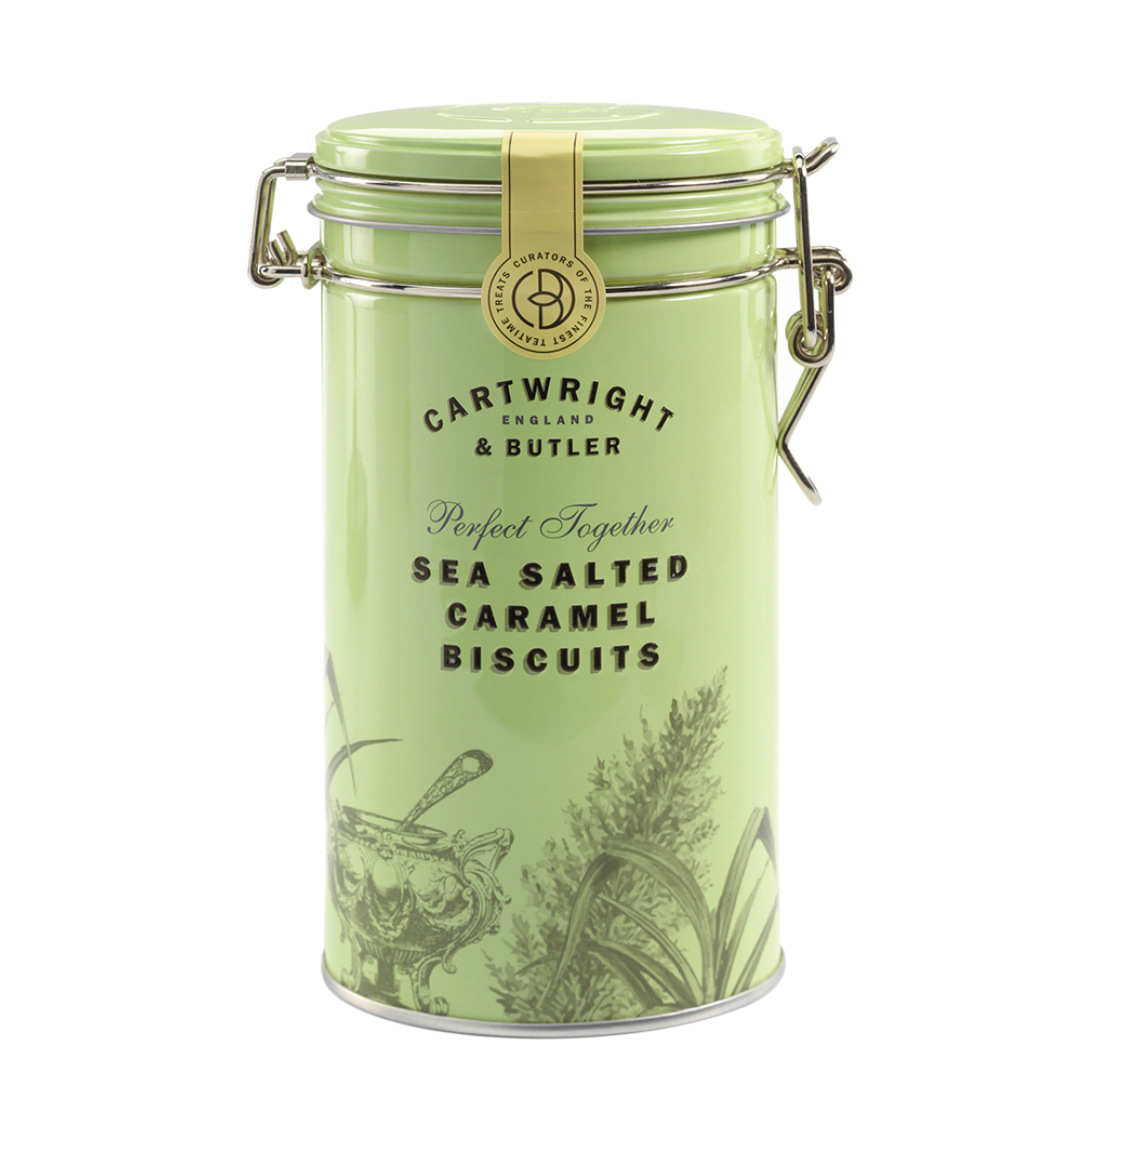 Cartwright and Butler Salted Caramel Biscuits in Tin 200g